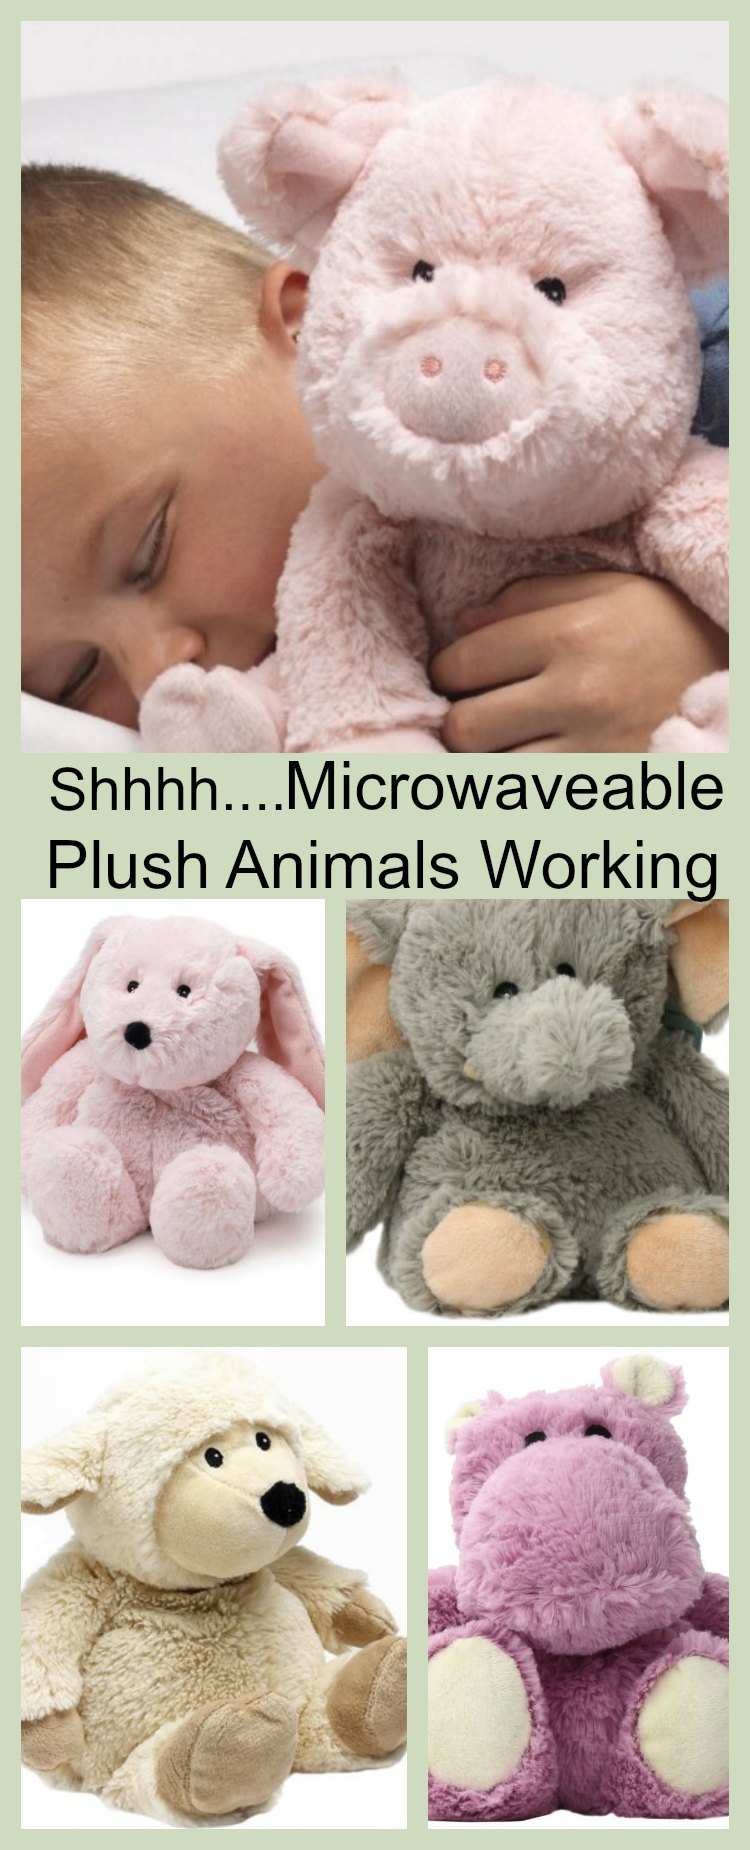 Shhhh...Microwaveable Plush Animals Working